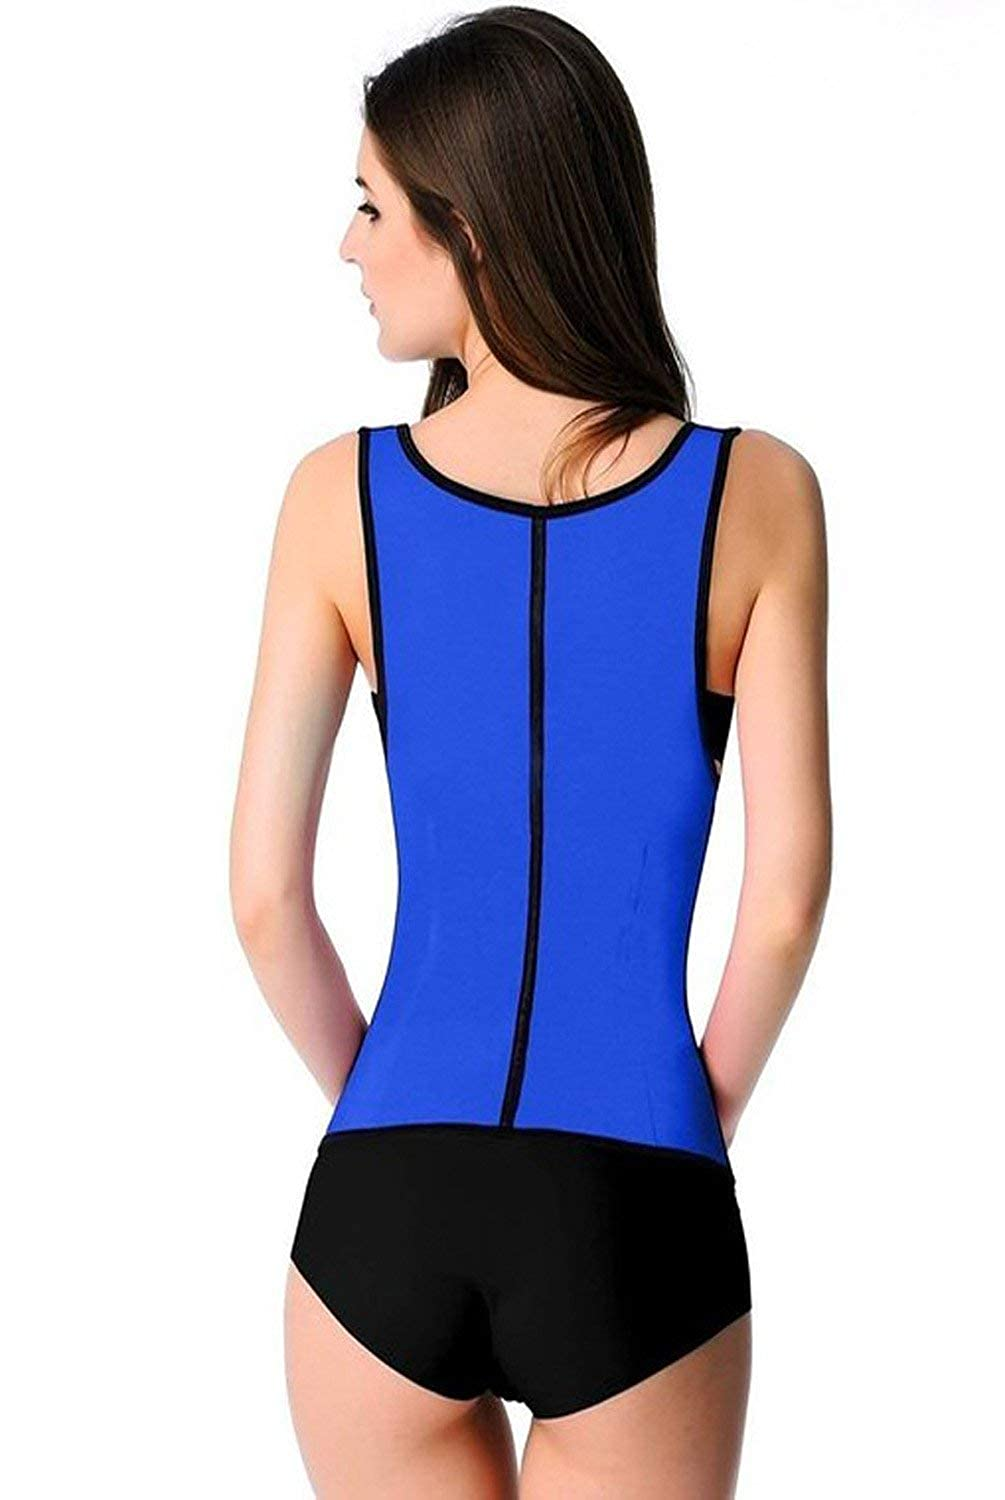 The New Women Fashion Dimagrante Steel Palace Straitjacket The Cerimonia Shapewear Elegante Vintage Belly Away Body Shaping Corpetto Bustier Corsetto